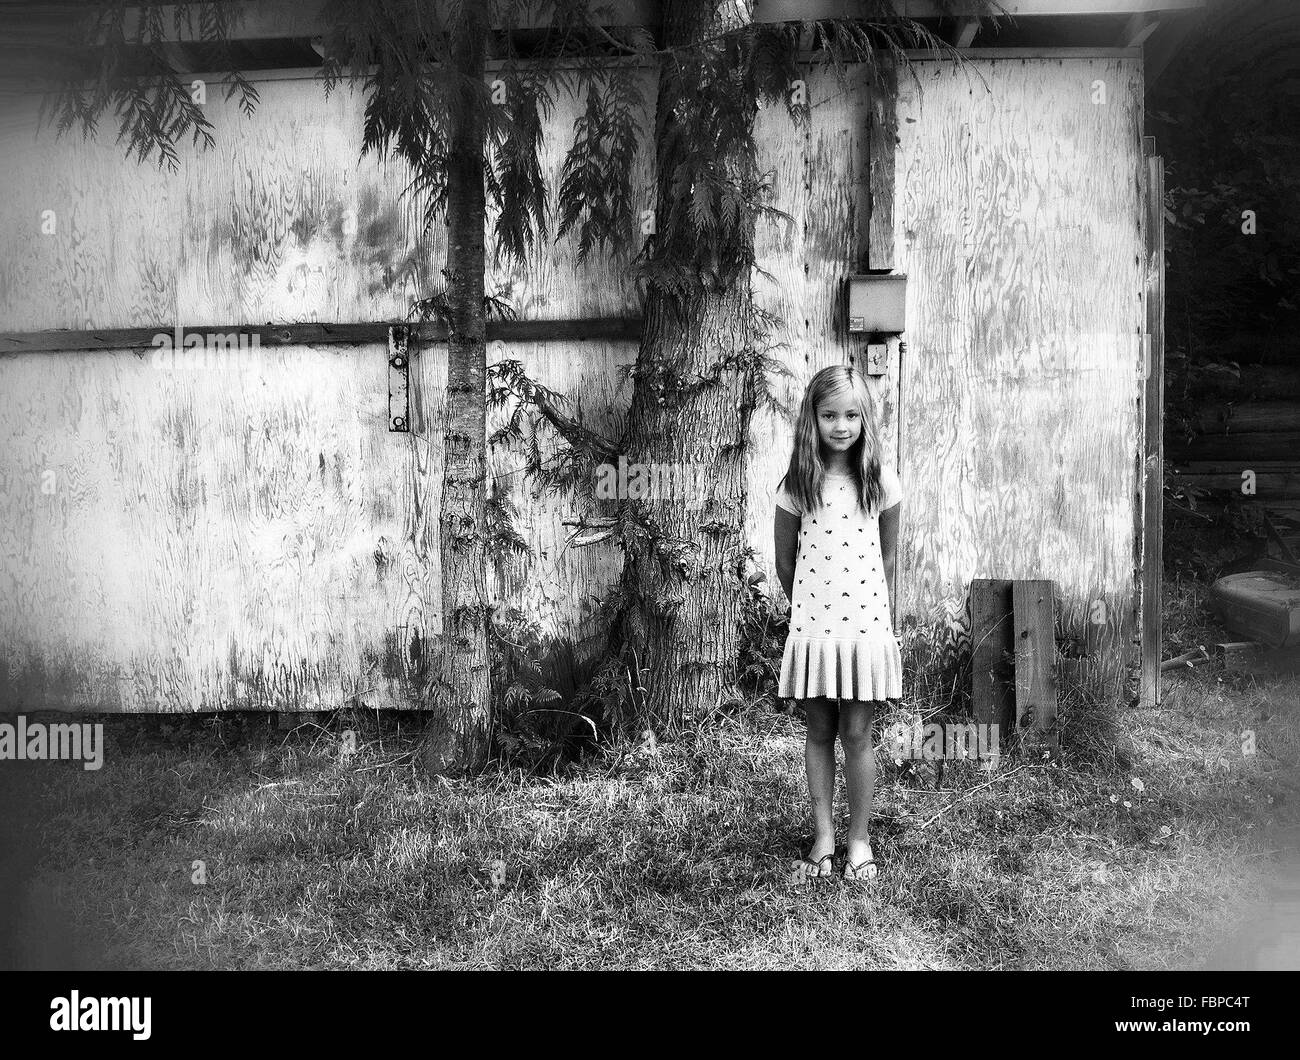 Full Length Portrait Of Girl Standing On Grass Against Wooden Wall - Stock Image